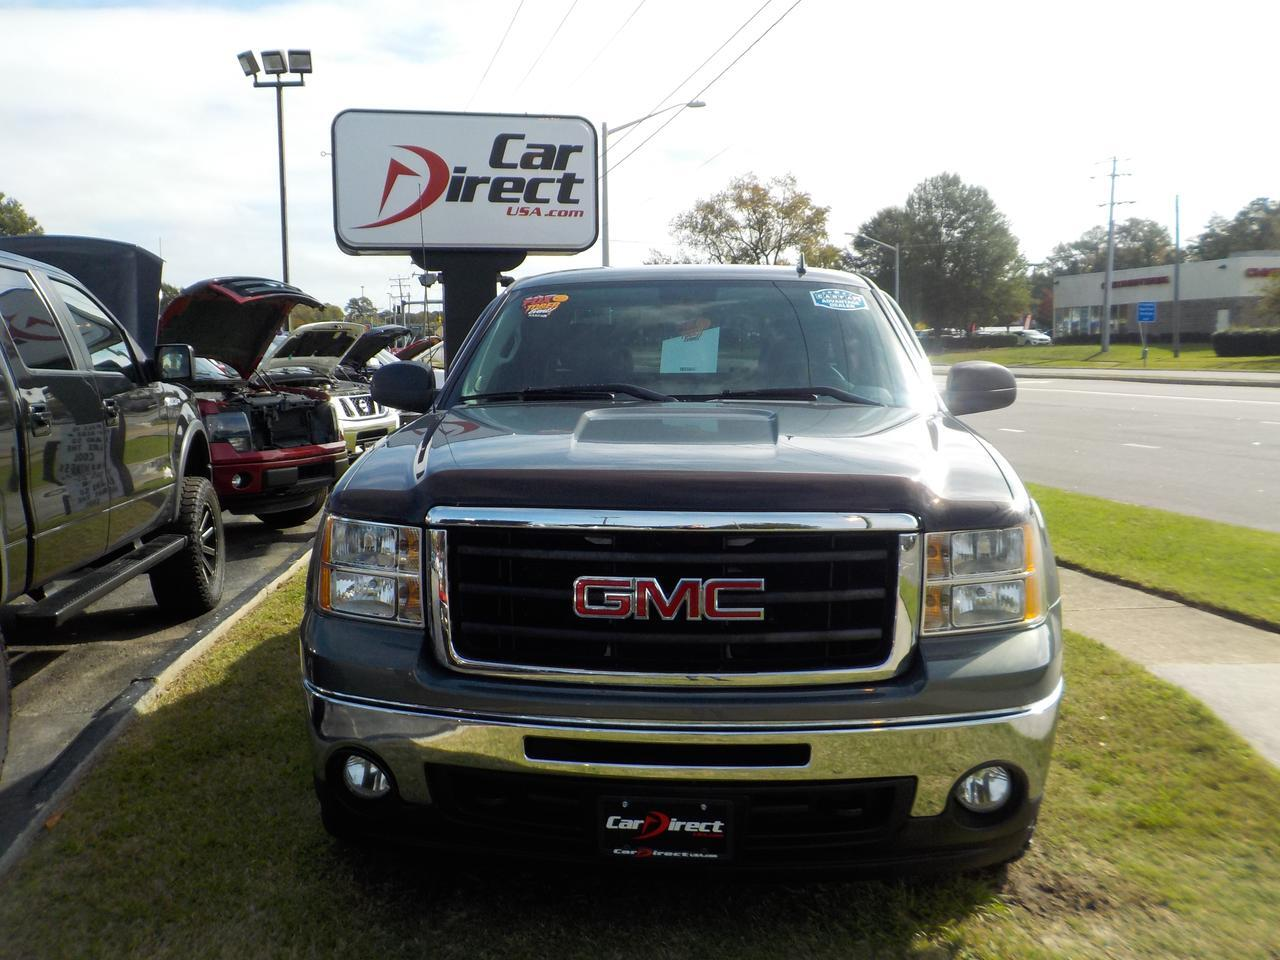 2011 GMC SIERRA SLE Z71 4X4, WARRANTY, RUNNING BOARDS, TOW HITCH, POWER SEAT, ONSTAR! Virginia Beach VA